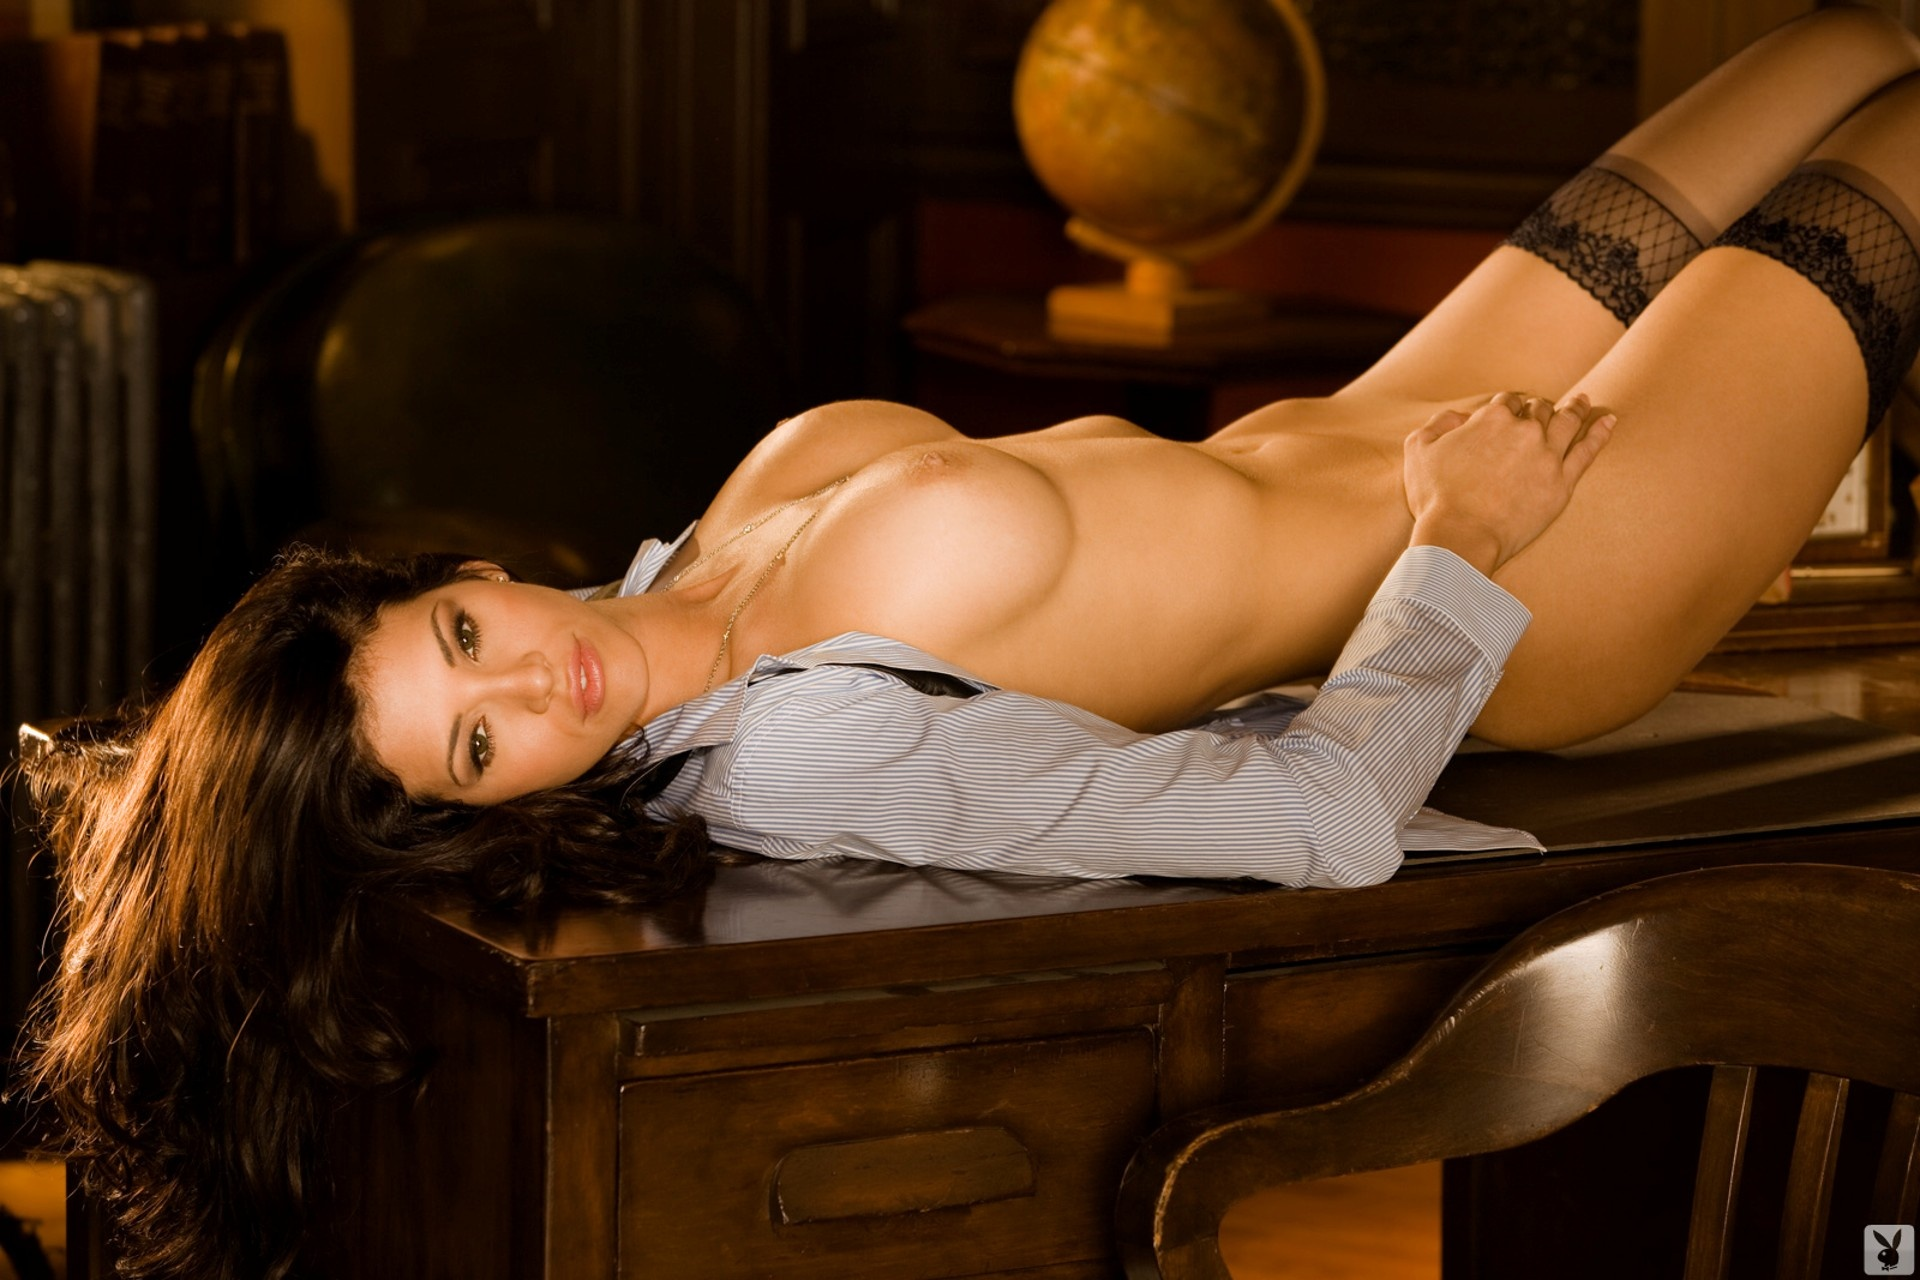 Remarkable, very hope dworaczyk nude ass fucking remarkable, very